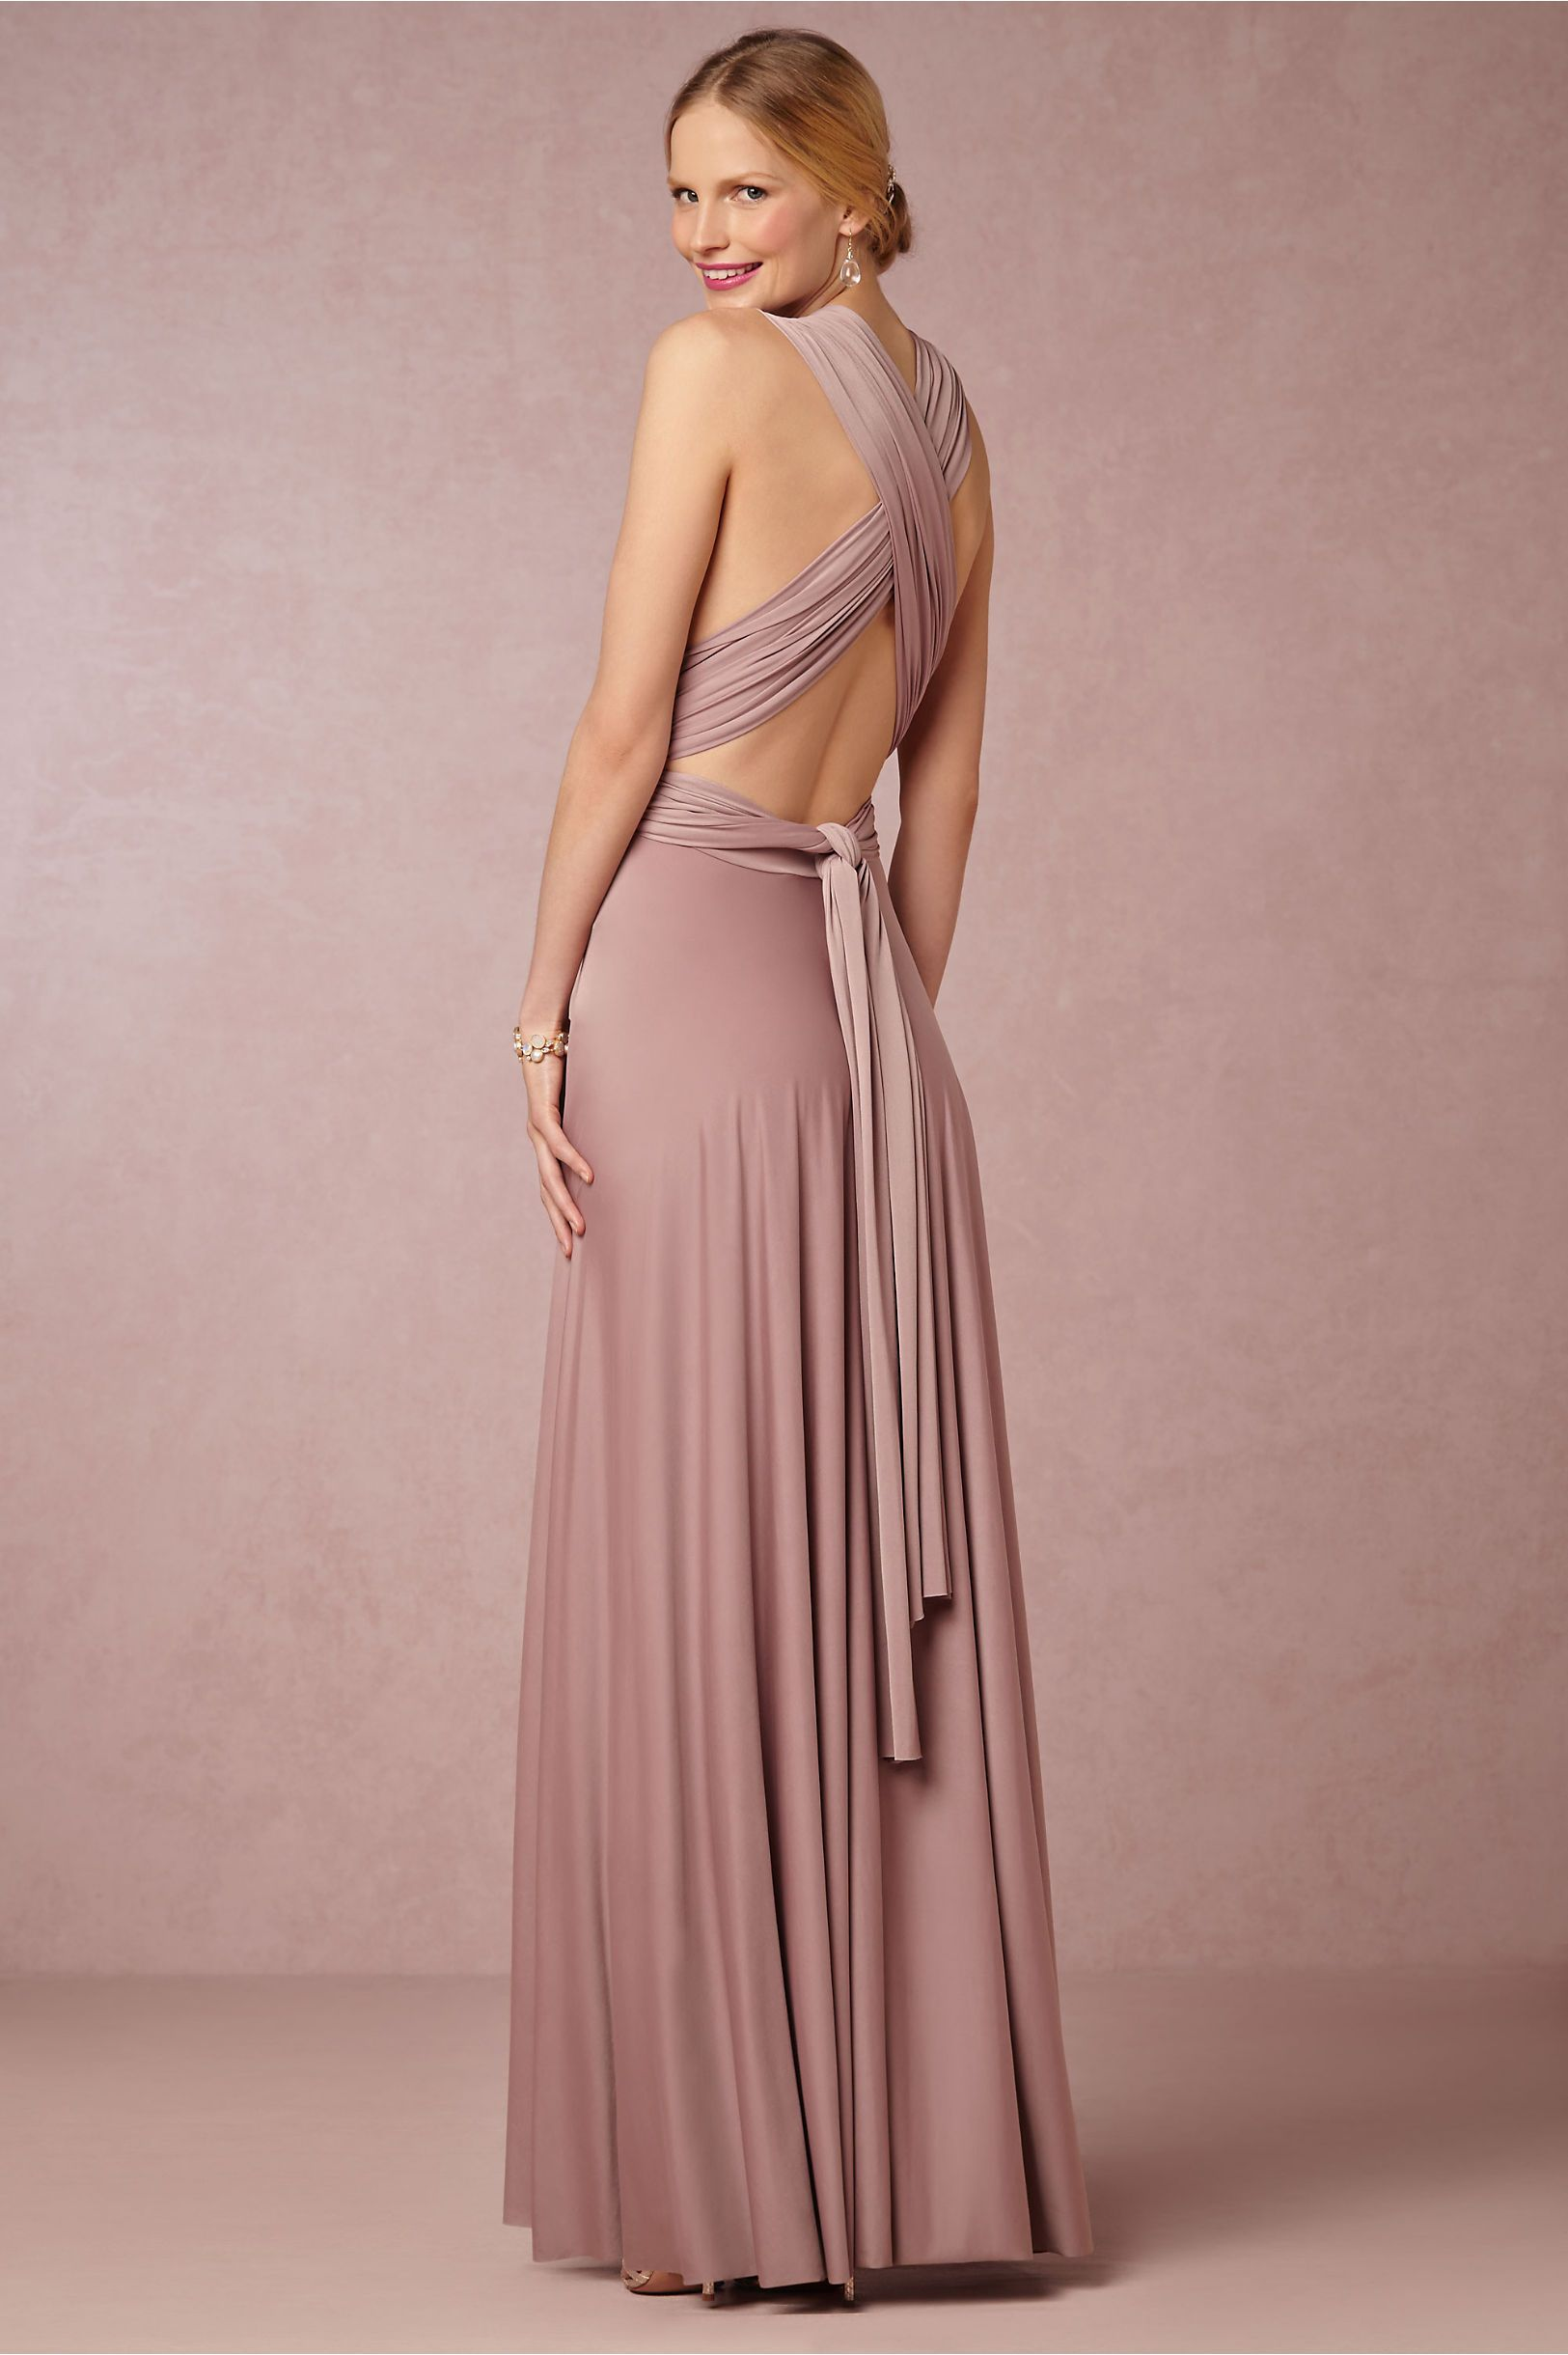 BHLDN SS 2015 Ginger Convertible Maxi Dress $310.00 Color: Heather ...